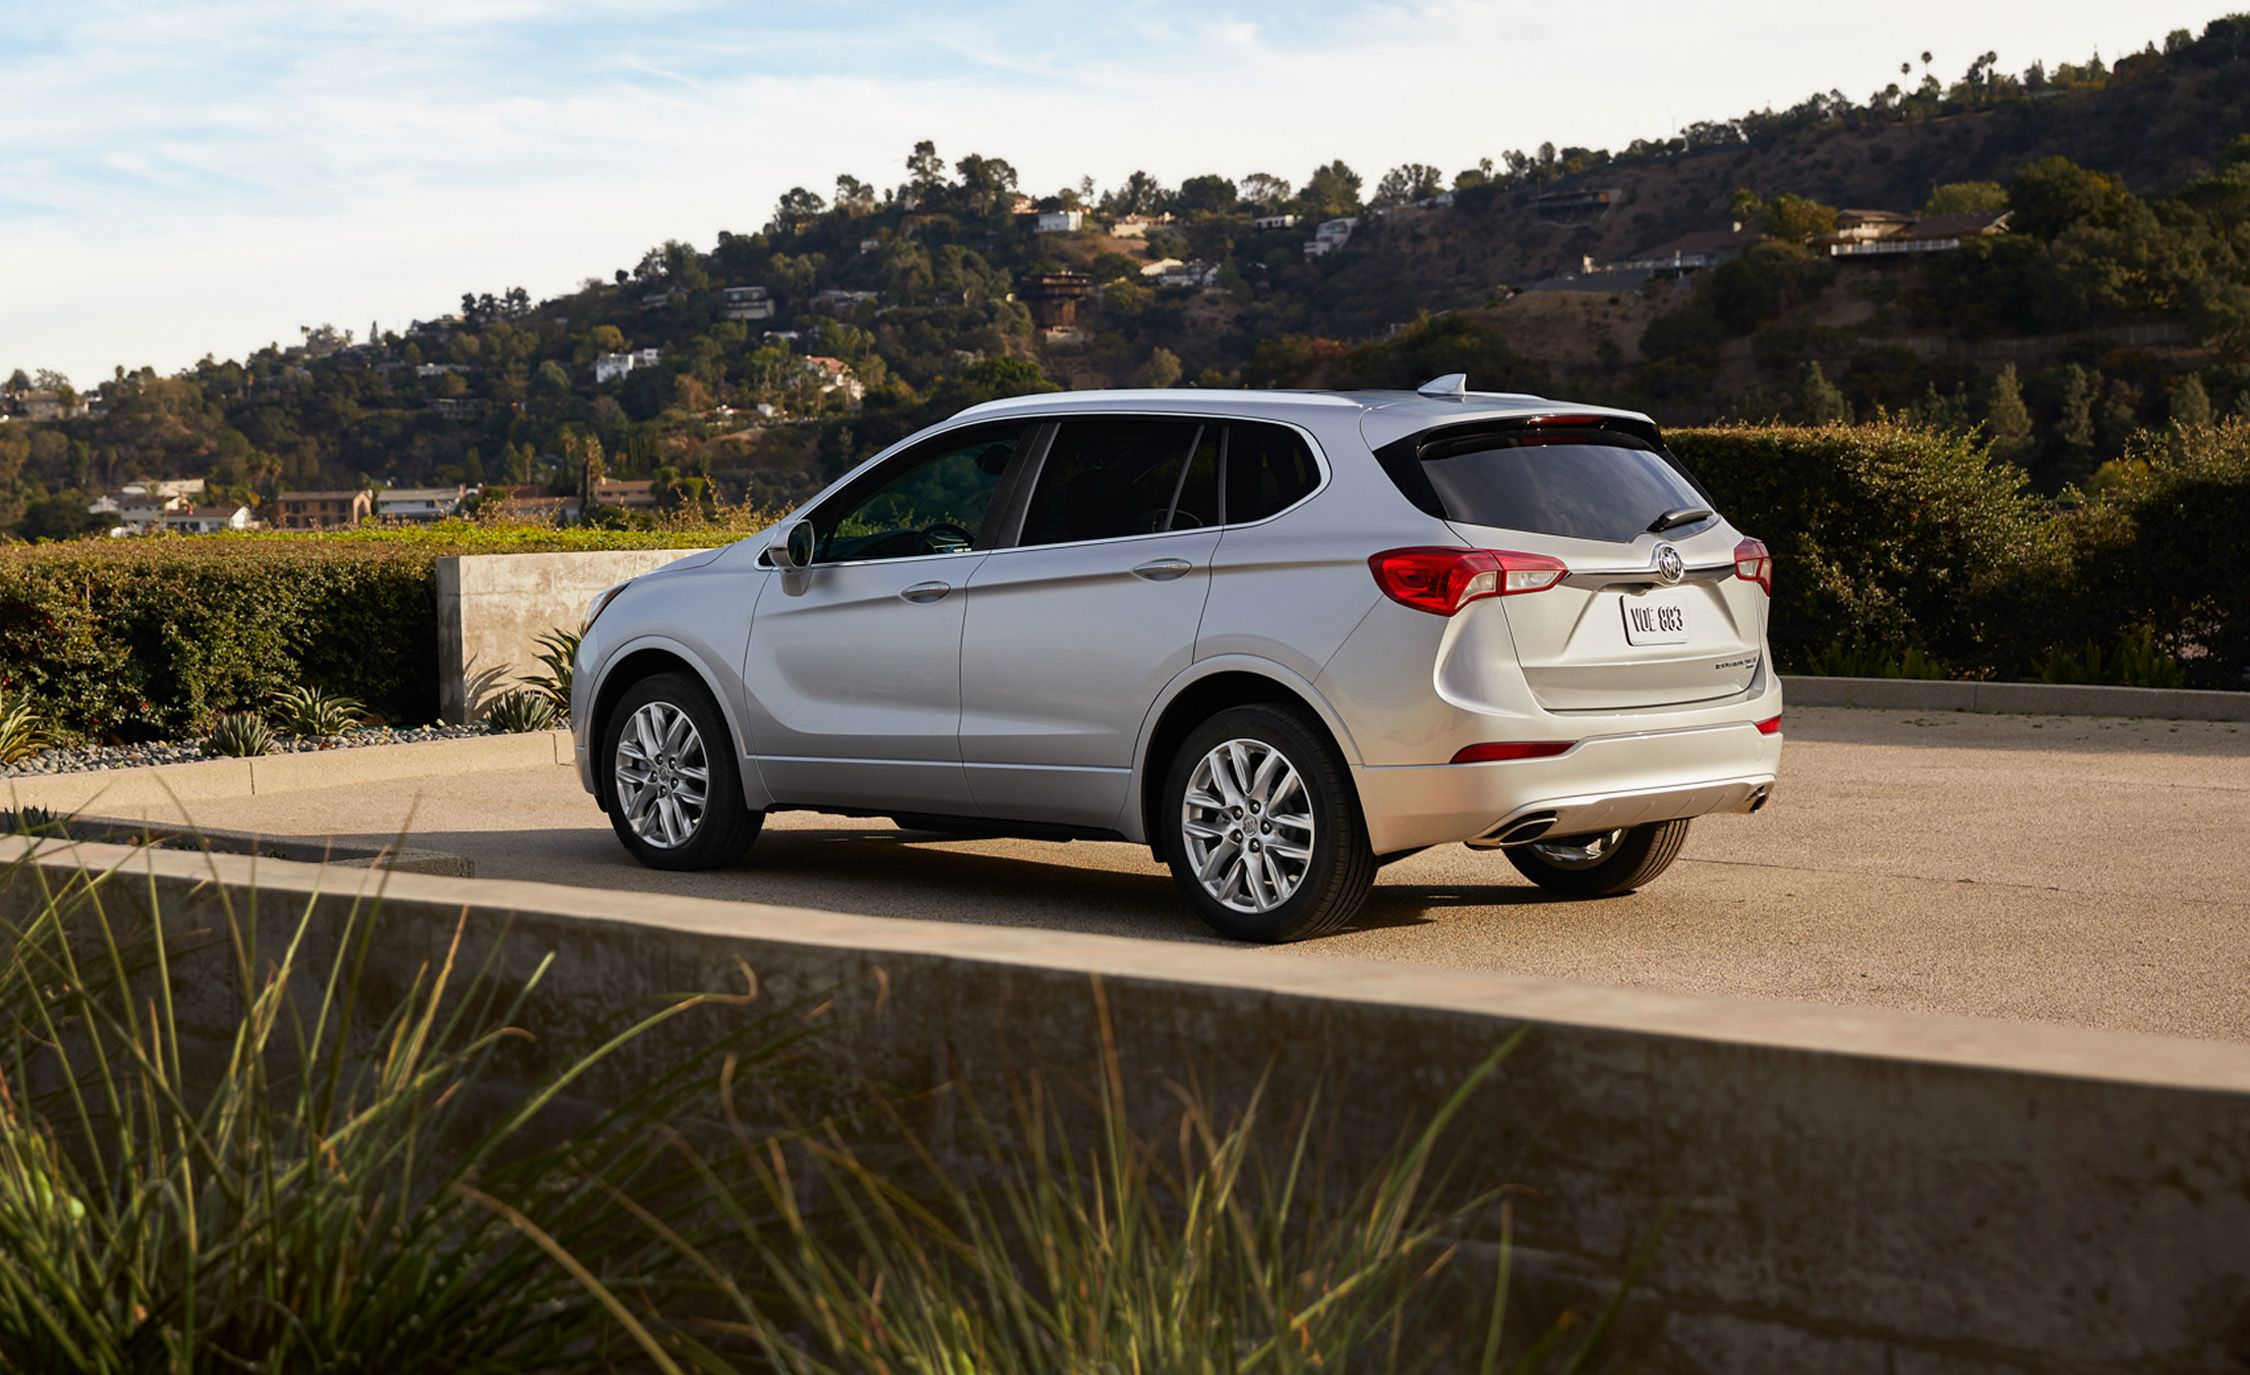 2019 Buick Envision Small Changes Outside Bigger Ones Underneath